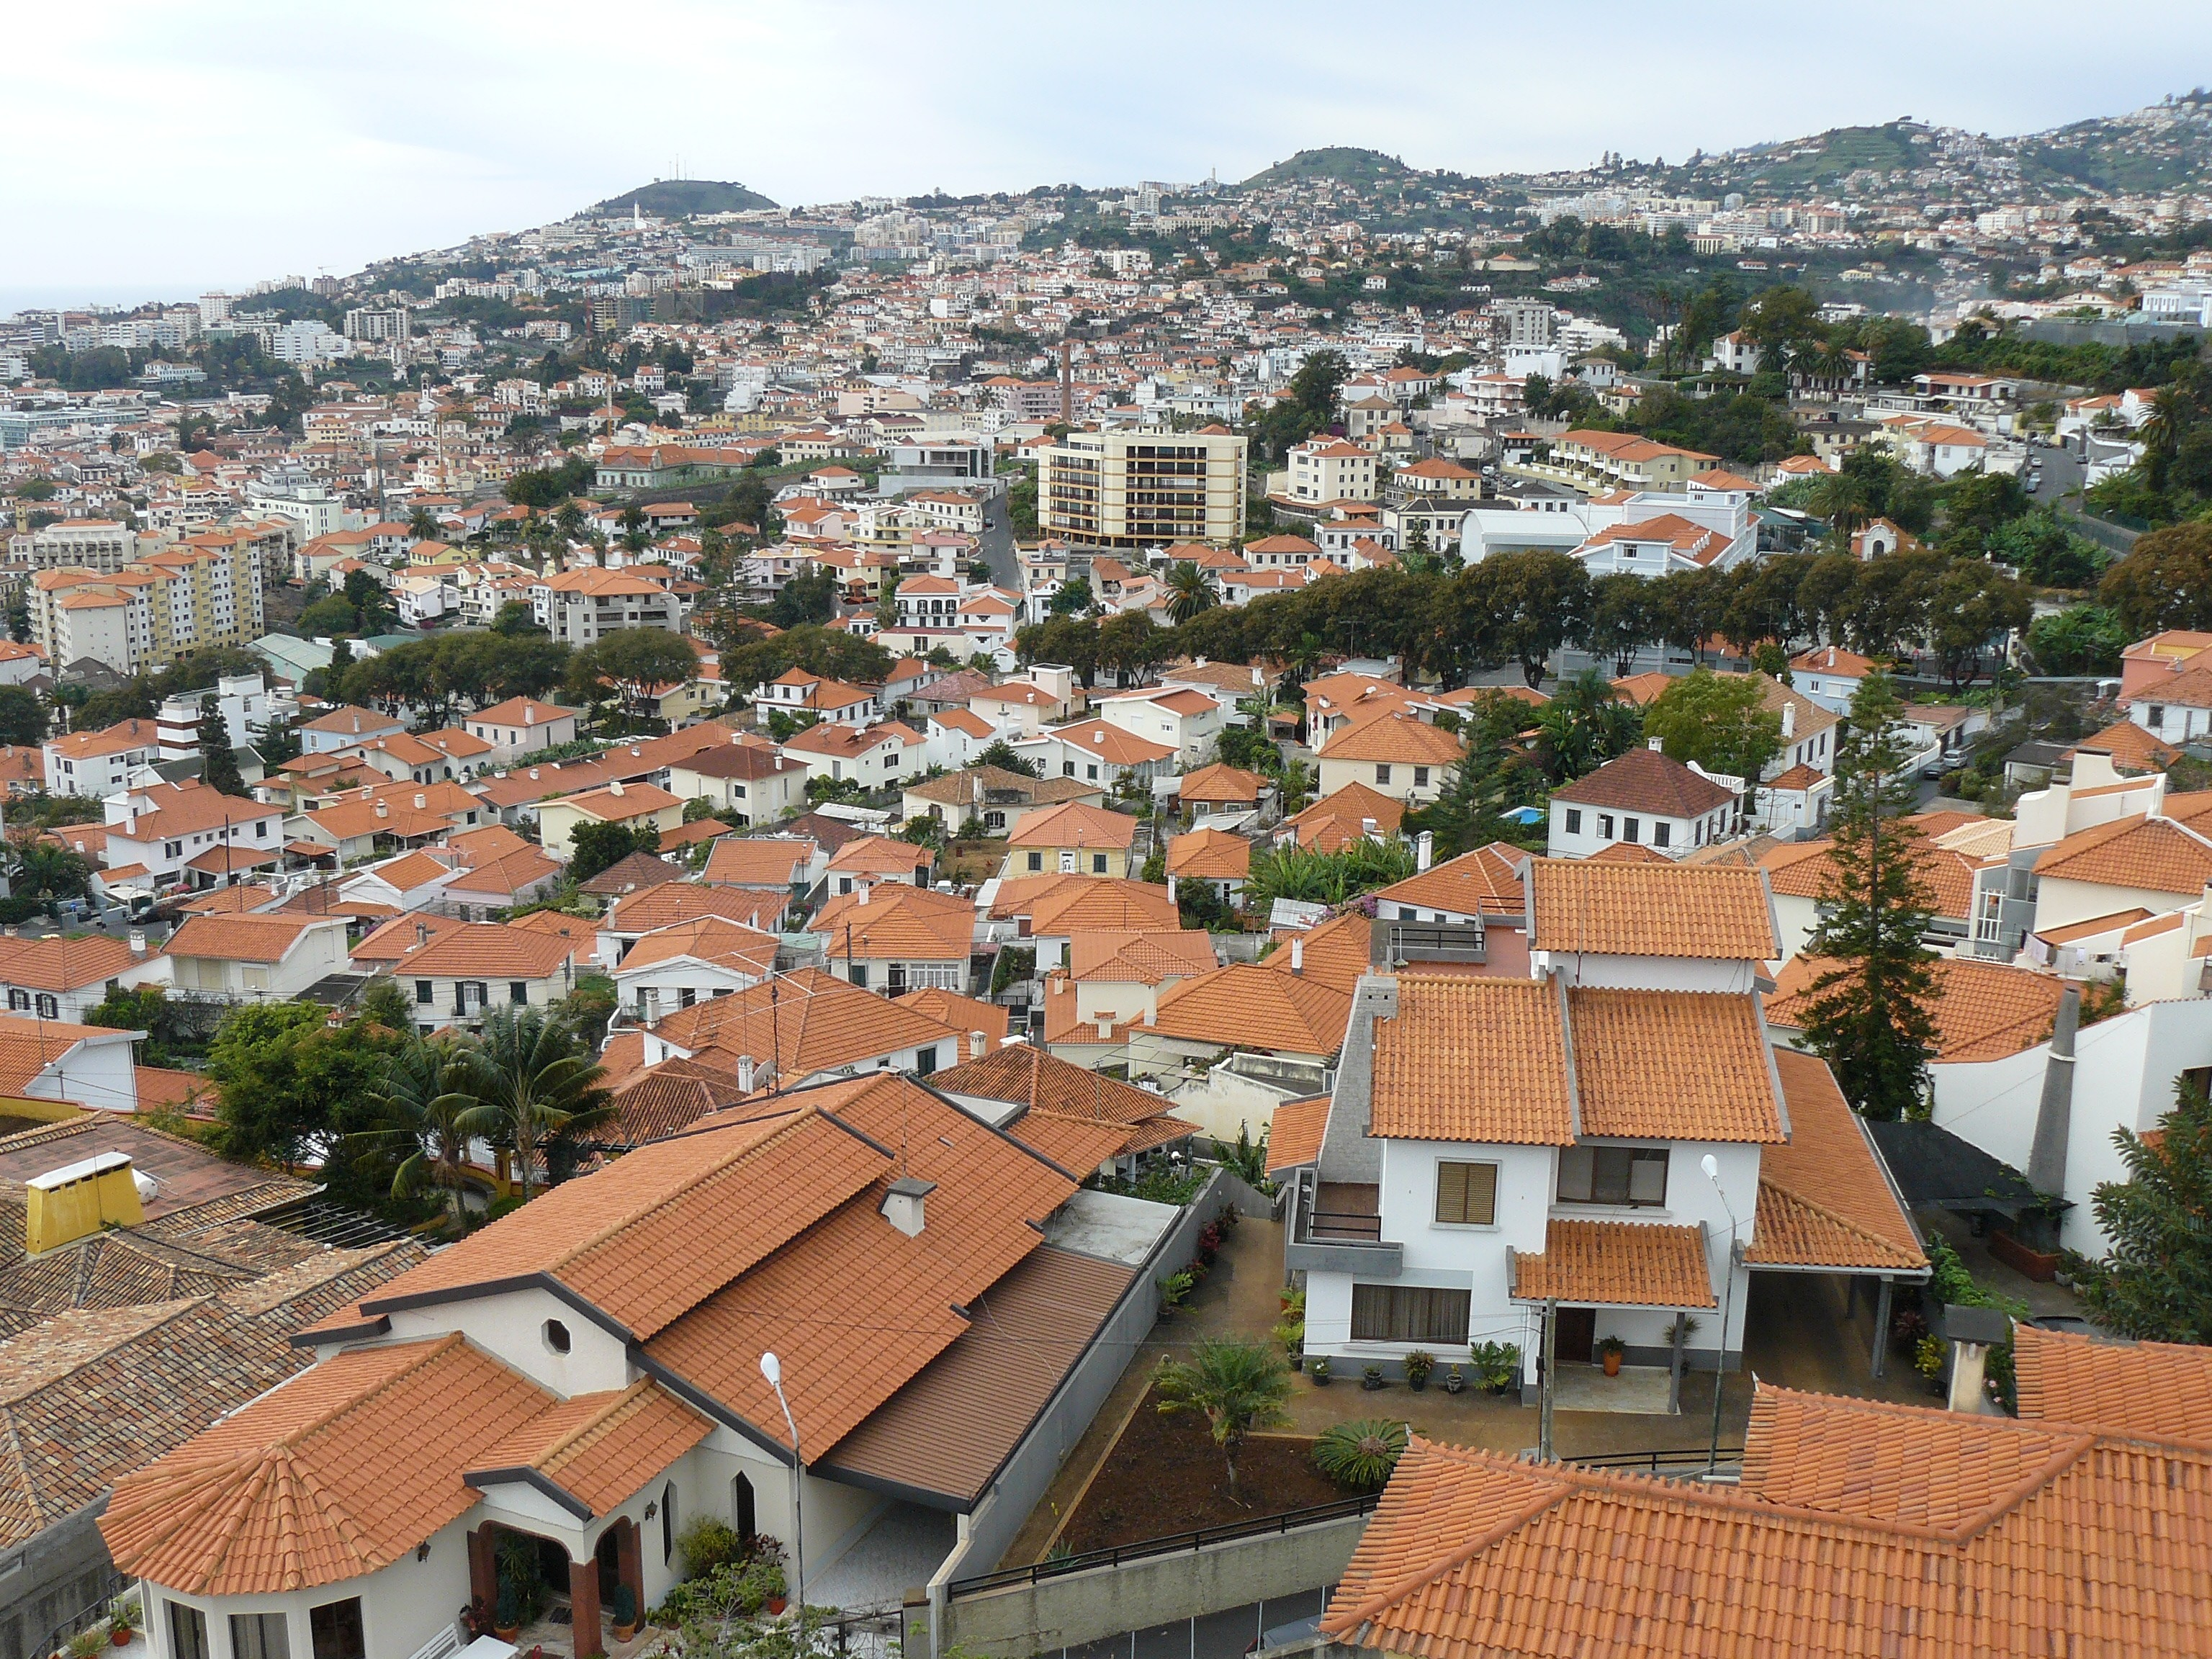 Vista panorâmica do Funchal. / Wikimedia commons